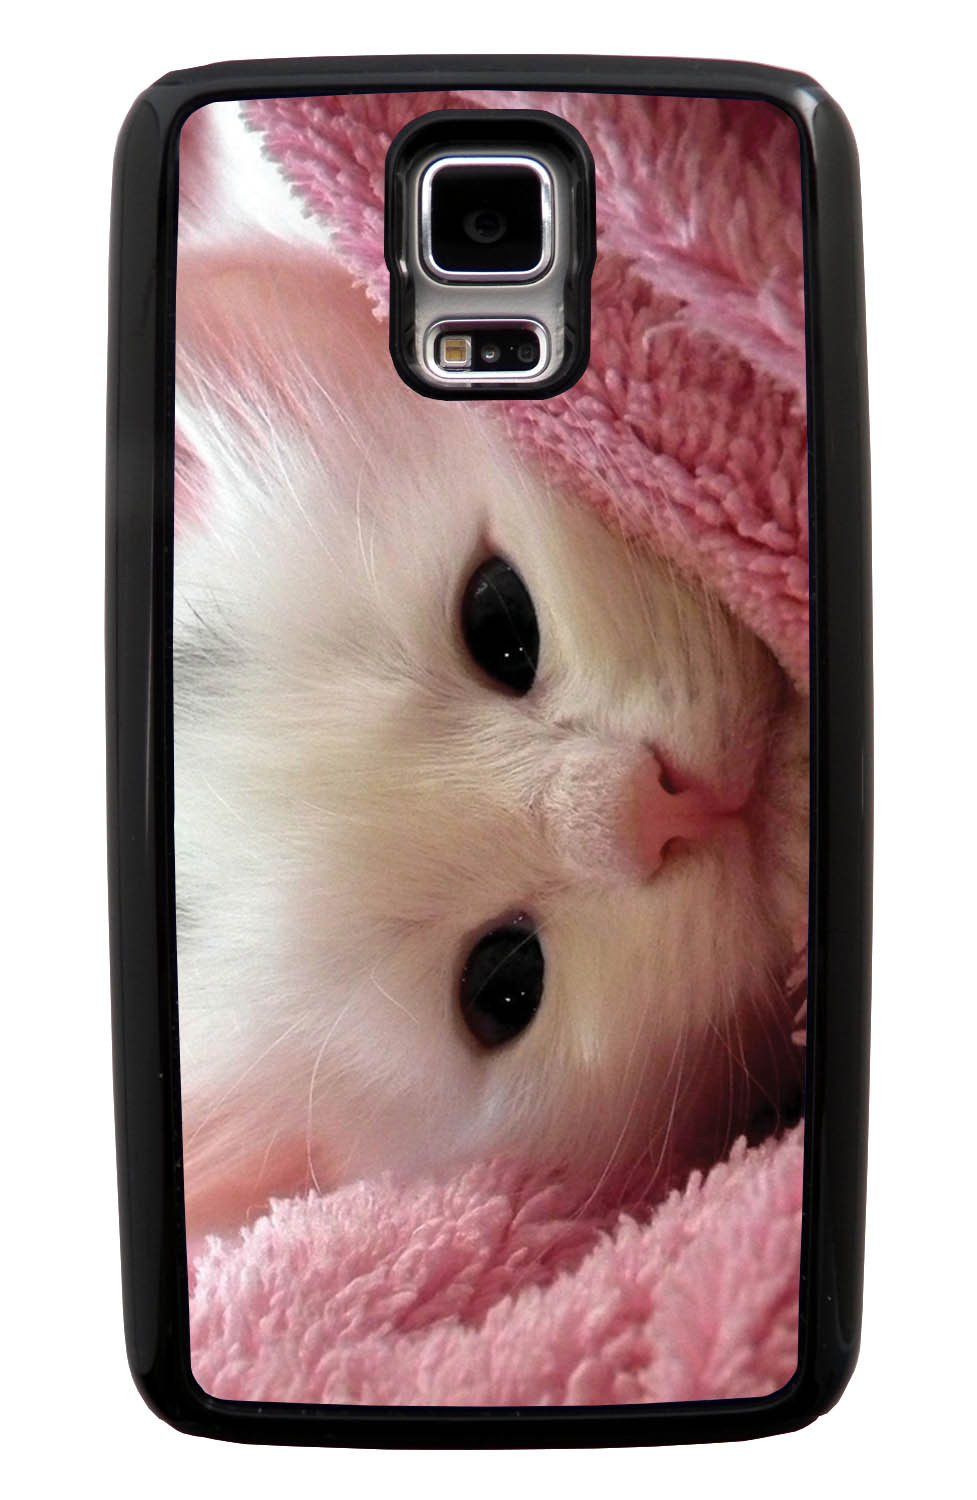 Samsung Galaxy S5 / SV Cat Case - New Born Kitten Photo